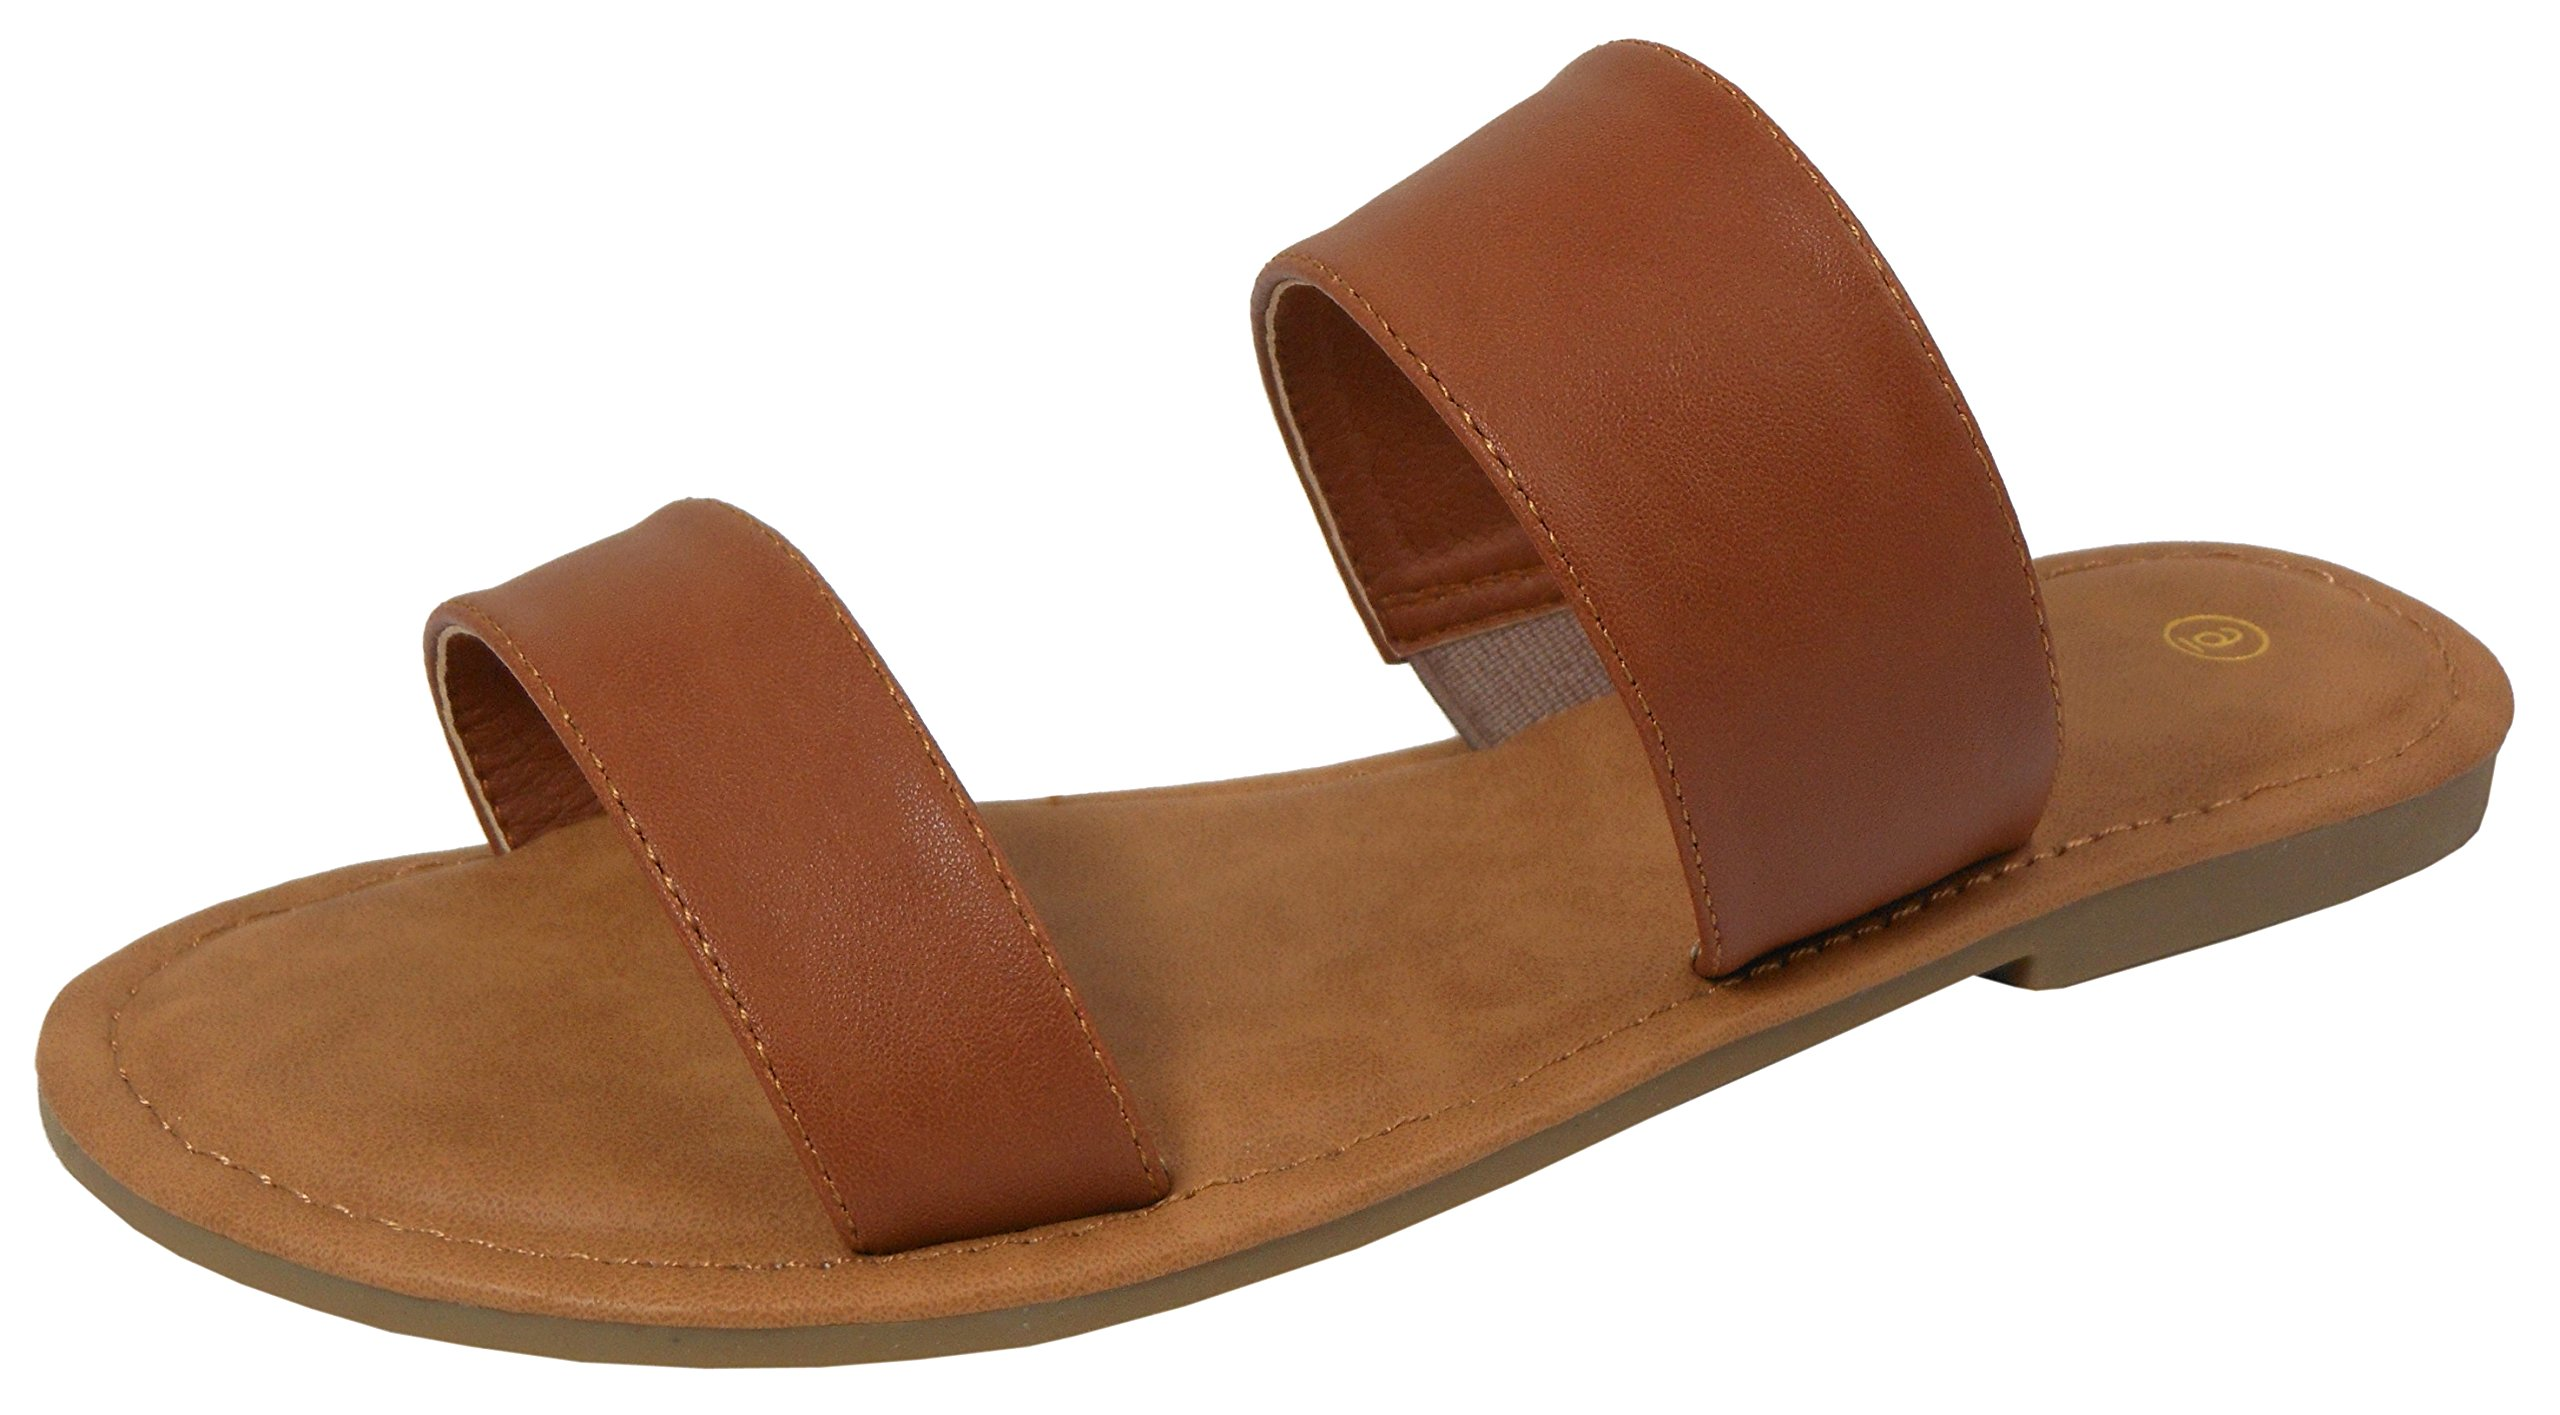 Cambridge Select Women's Two Strap Slip-On Flat Slide Sandal (8.5 B(M) US, Tan)